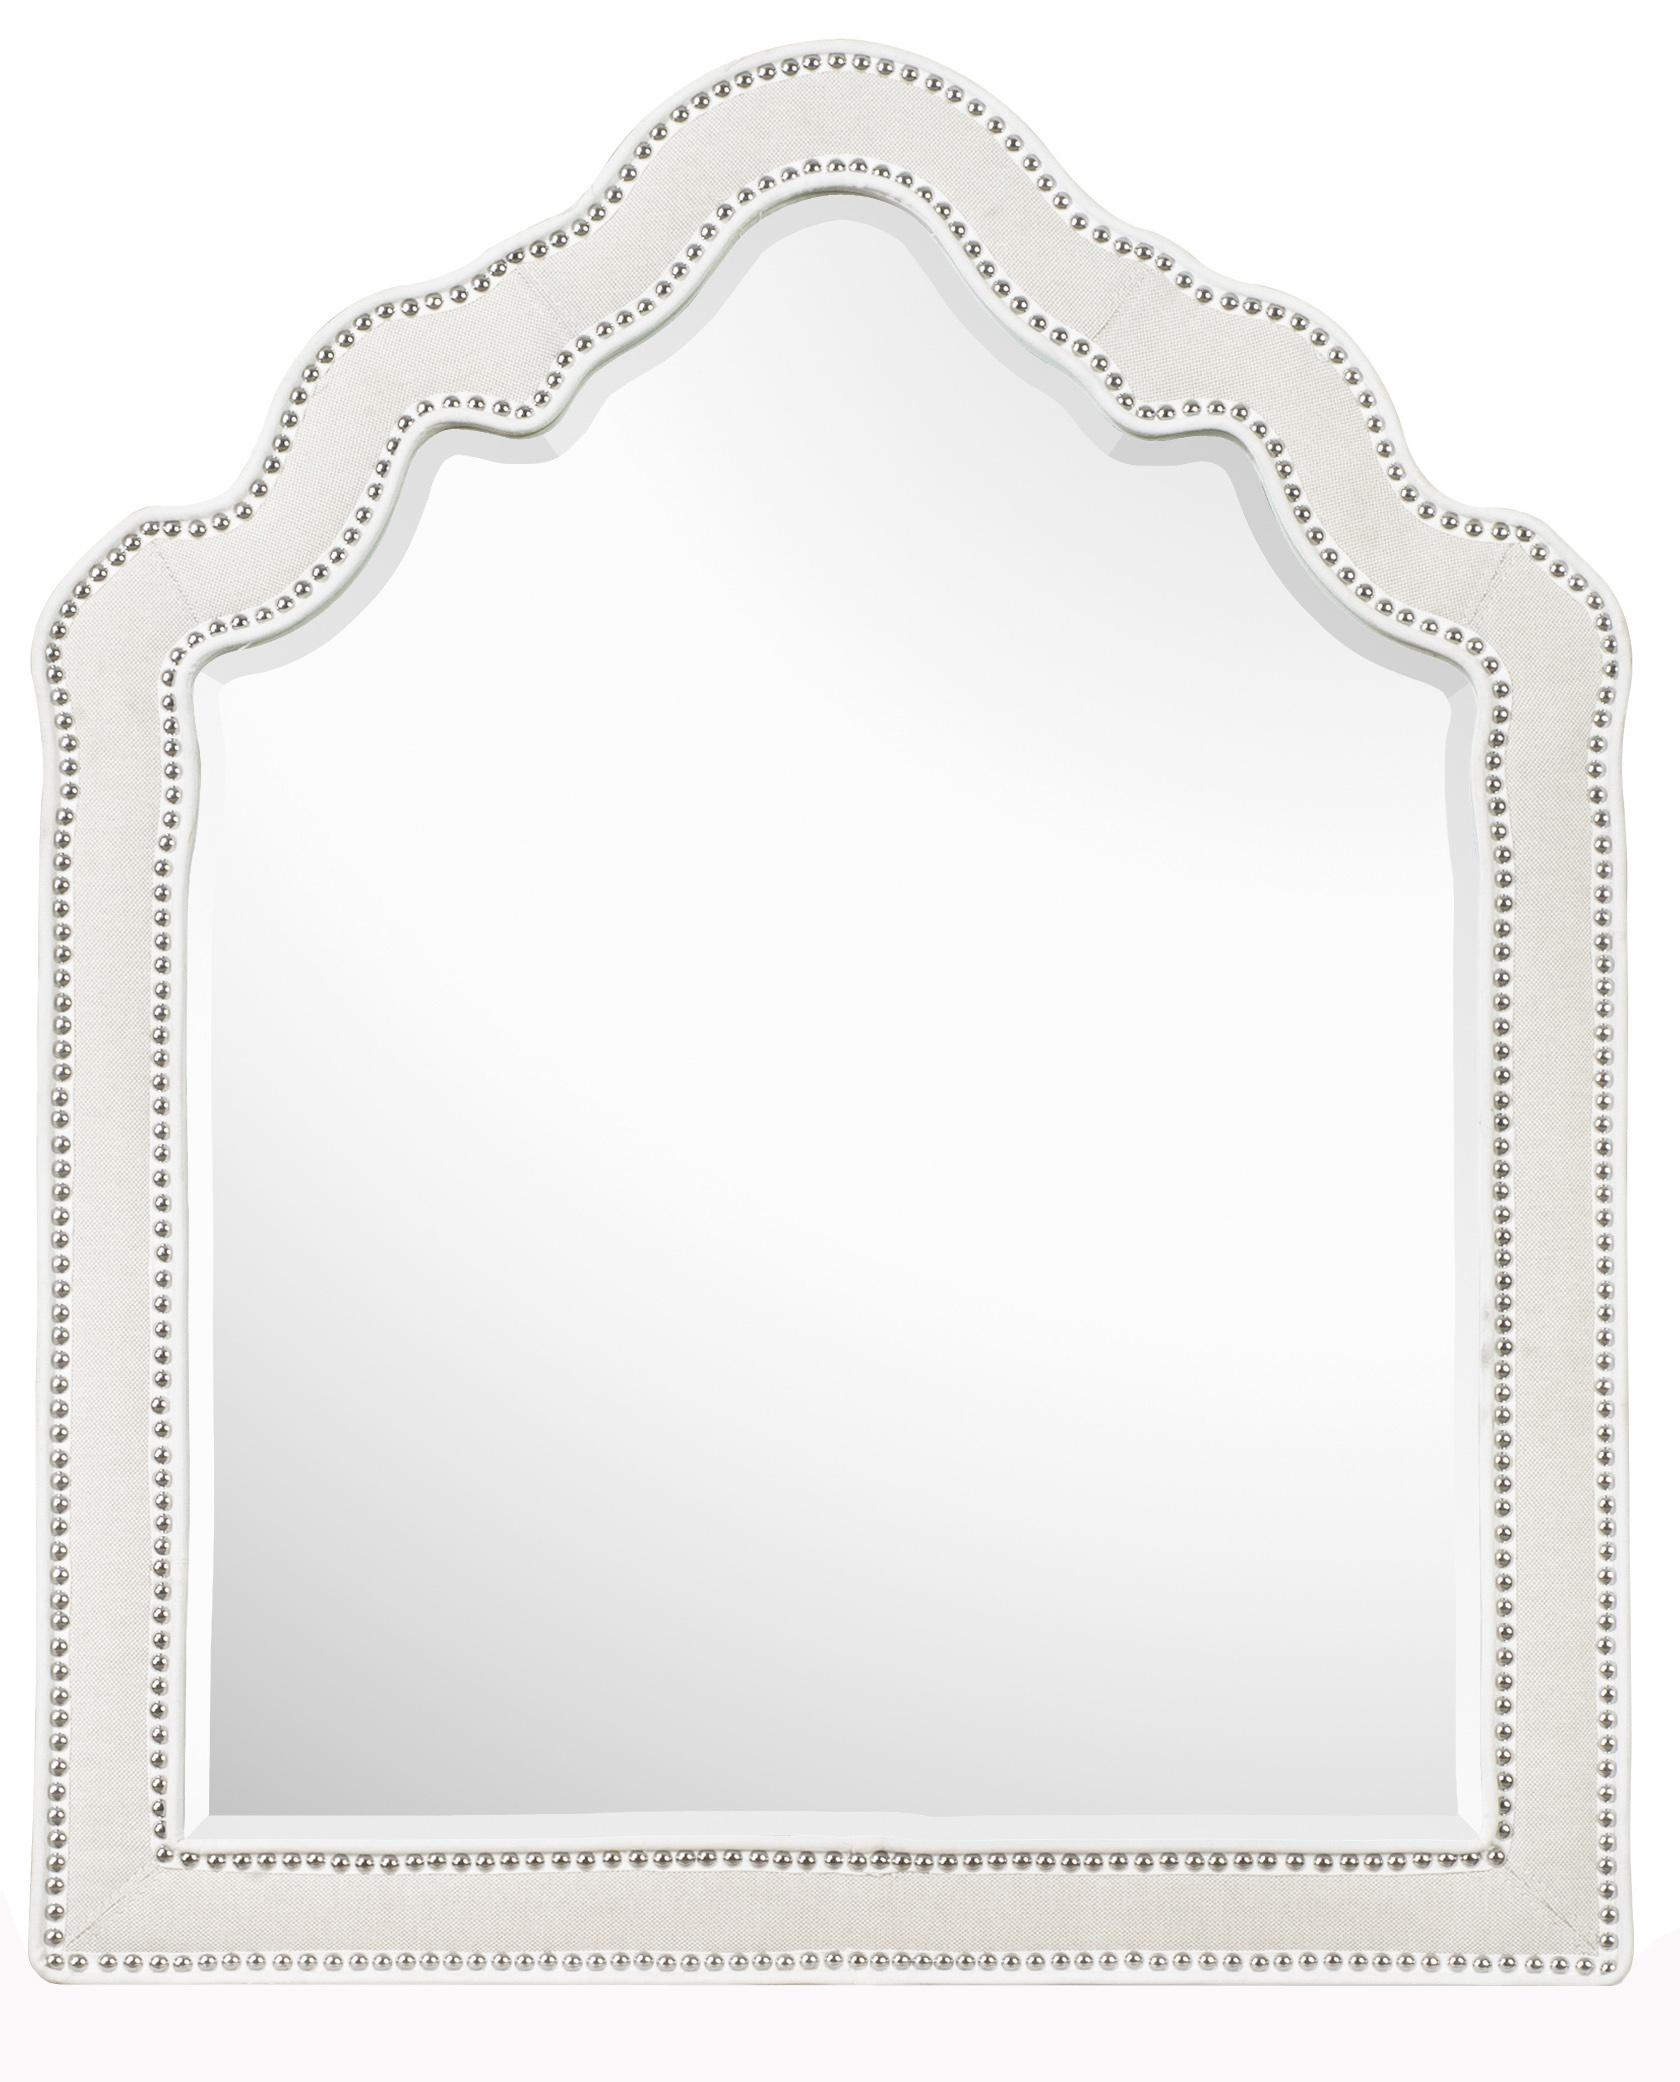 Next Generation by Magnussen Gabrielle Youth Shaped Mirror - Item Number: Y2194-45